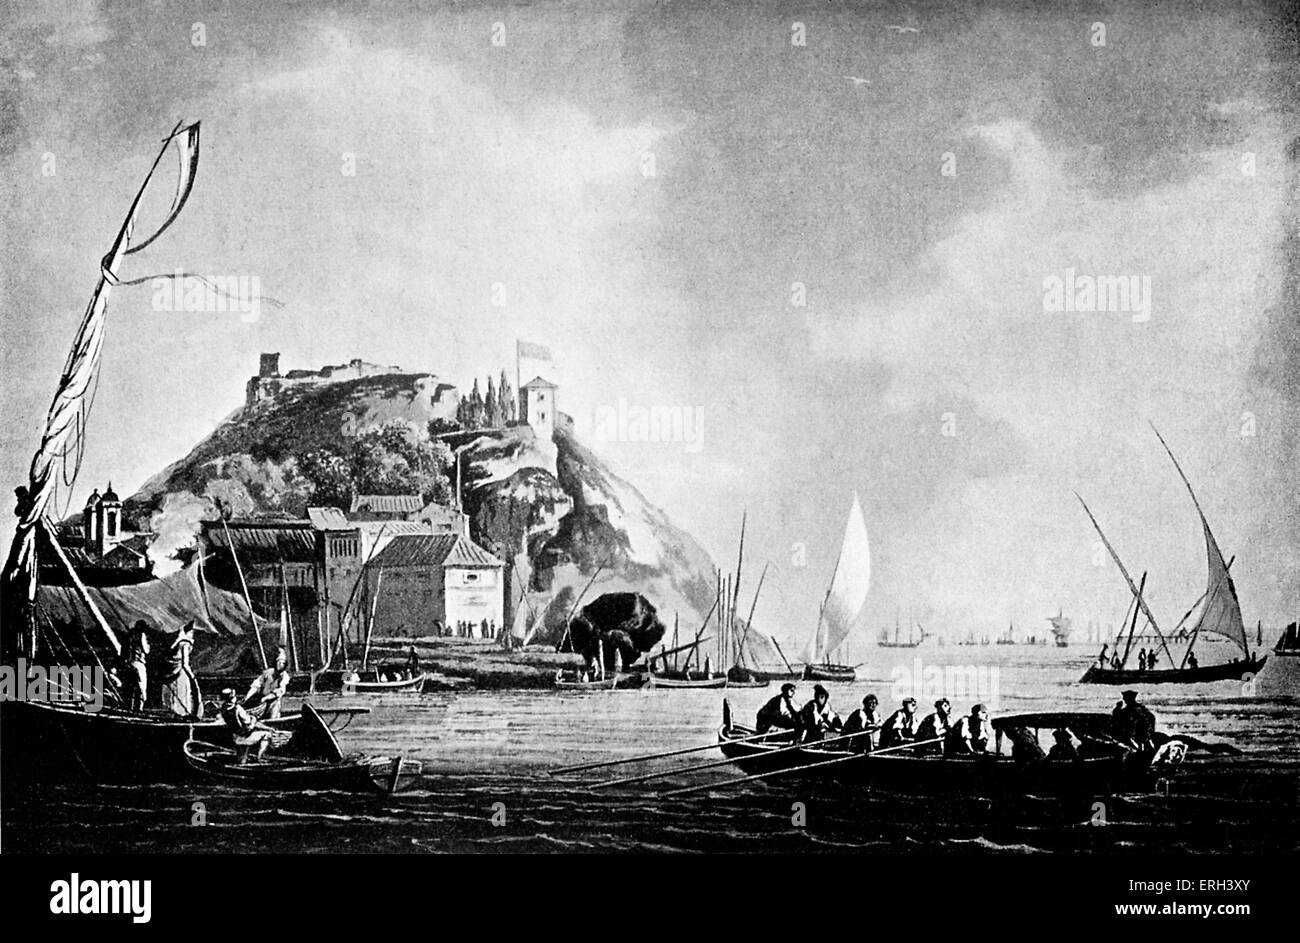 Lisbon harbour - 1793. Drawn by Noel, engraved by Wells.  Sailing and rowing boats. - Stock Image